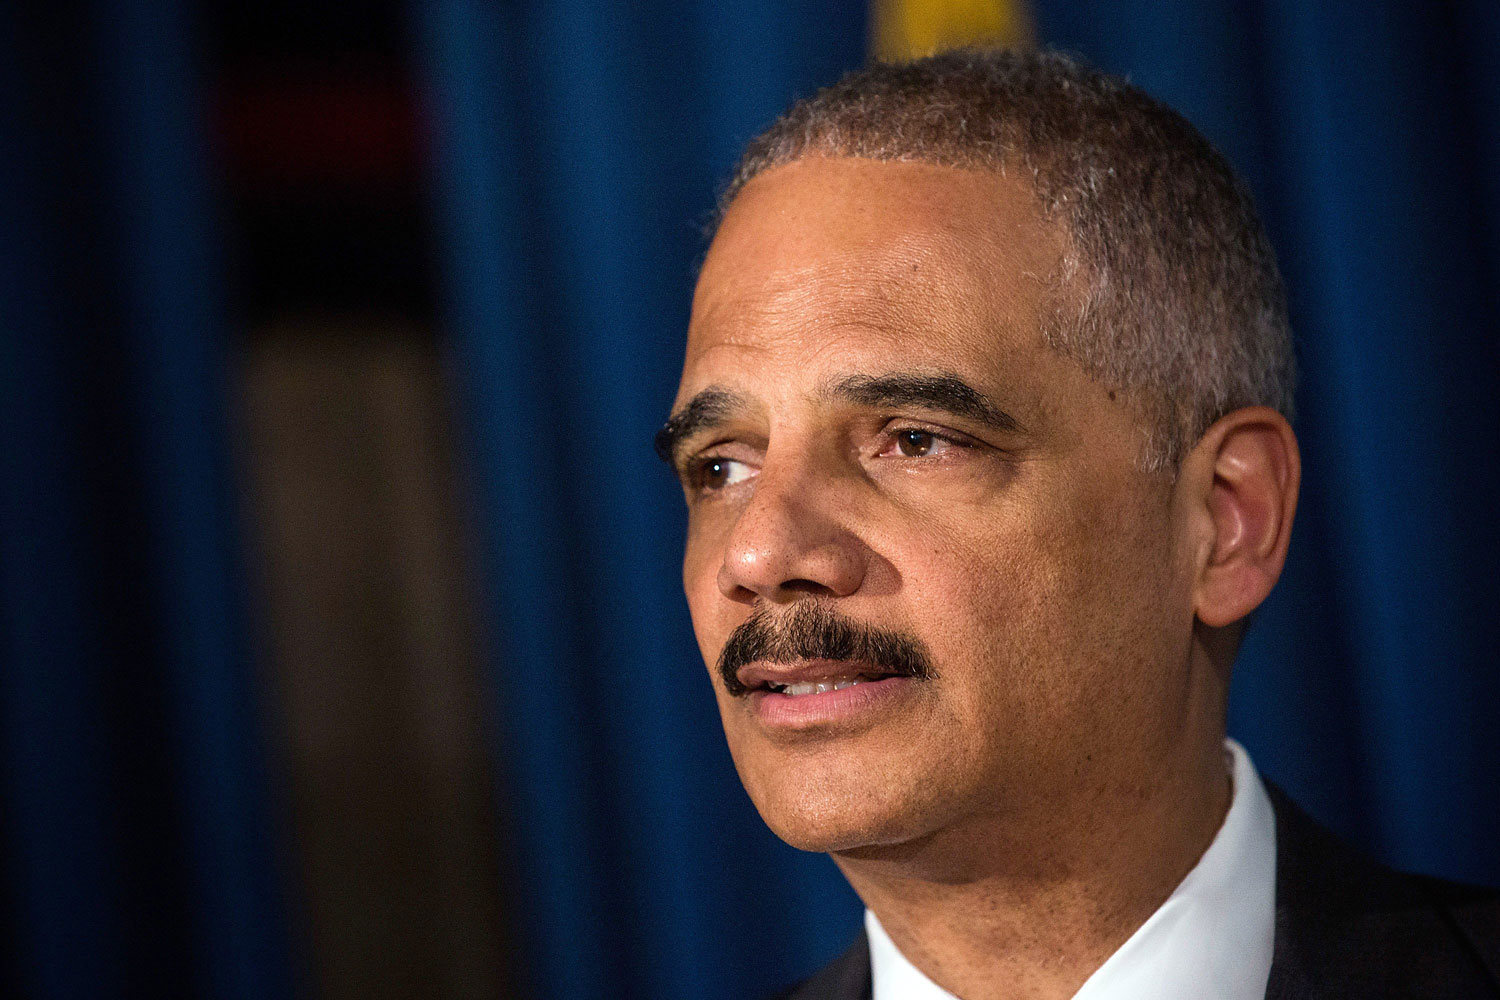 Attorney General Eric Holder speaks at a press conference on April 1, 2014 in New York.